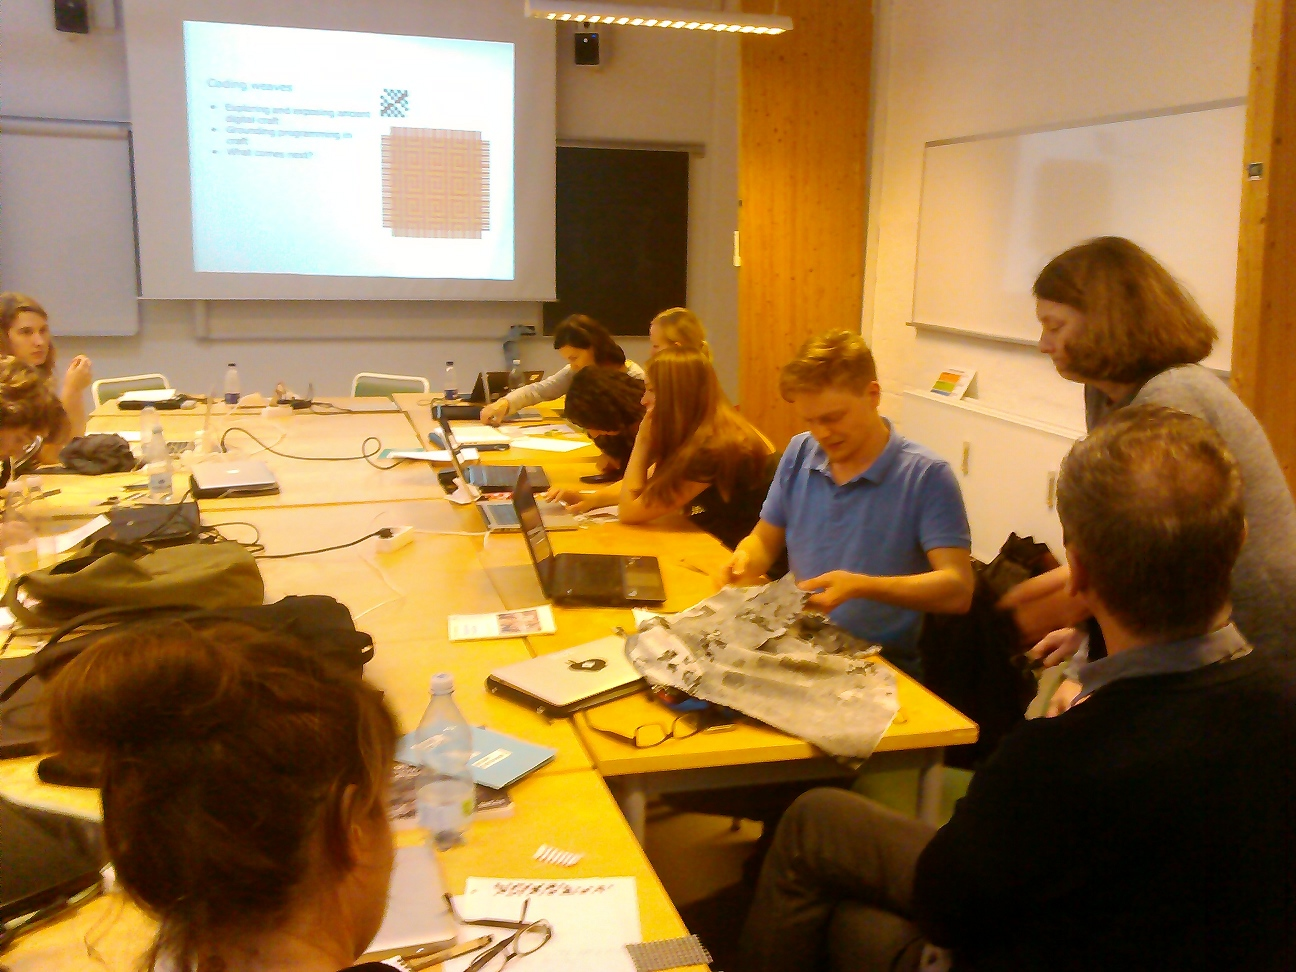 Workshop participants working in Aarhus